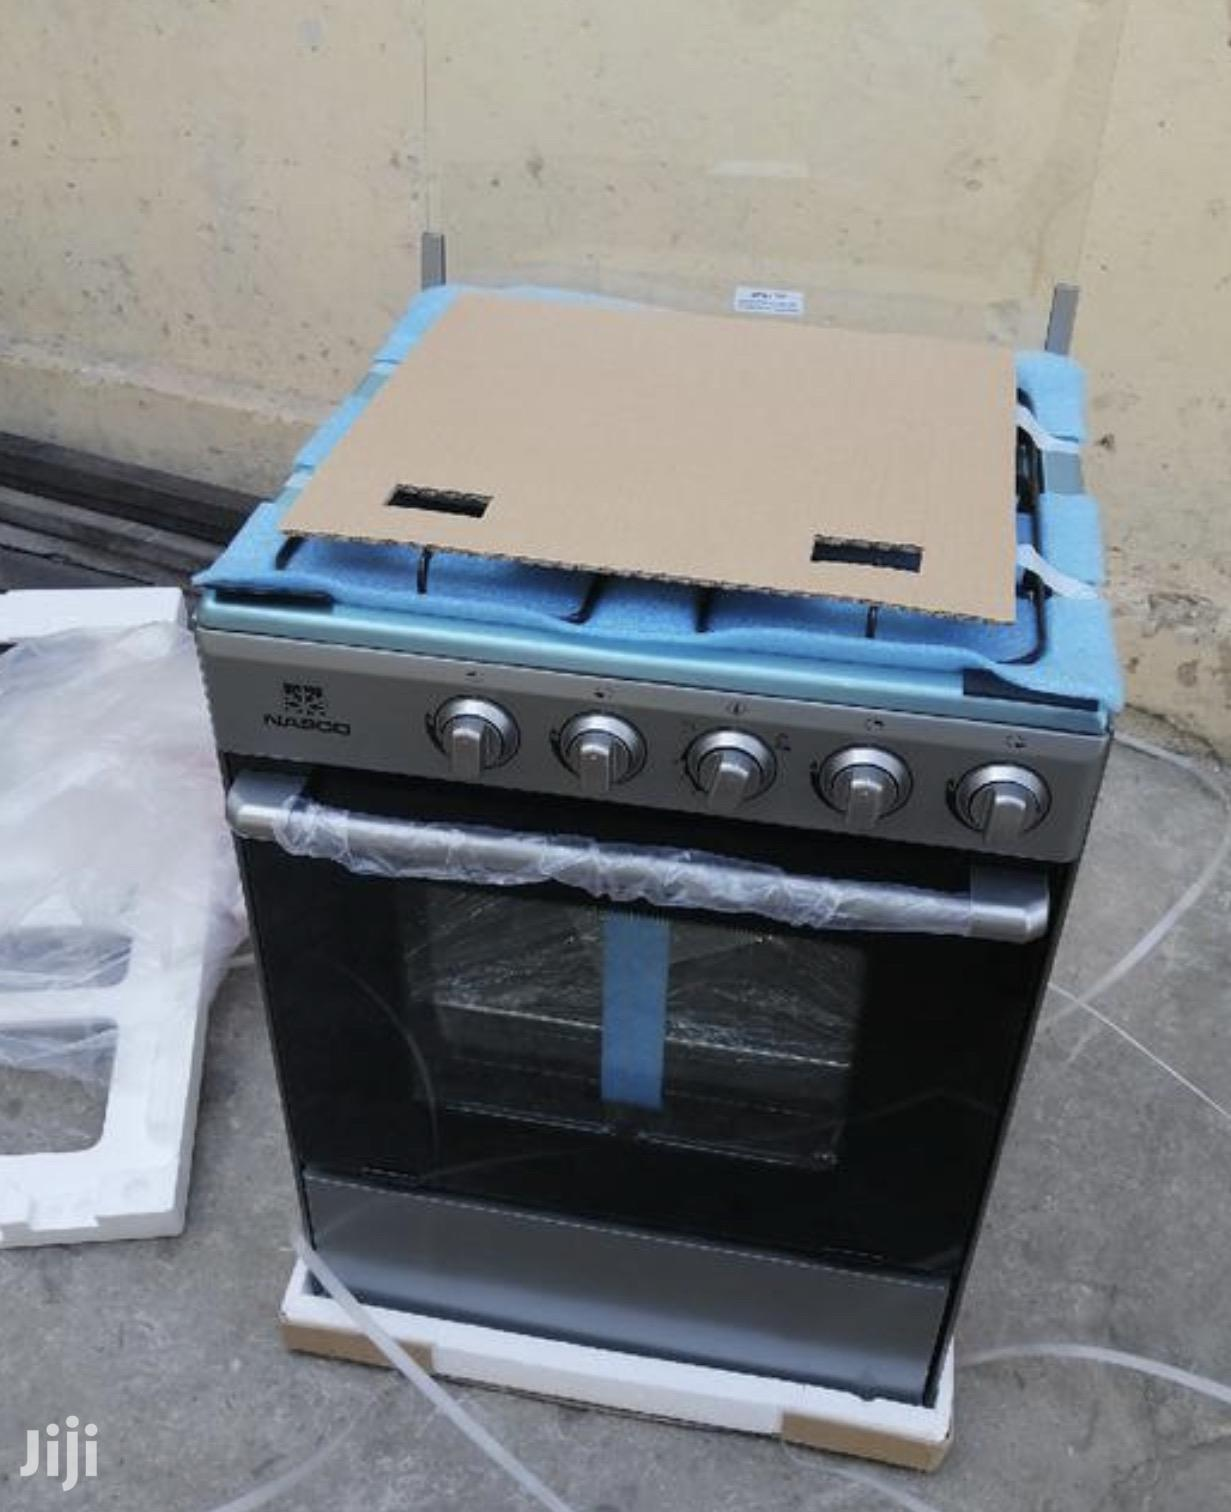 New Nasco 4 Burner Gas Cooker With Oven Grill Stainless